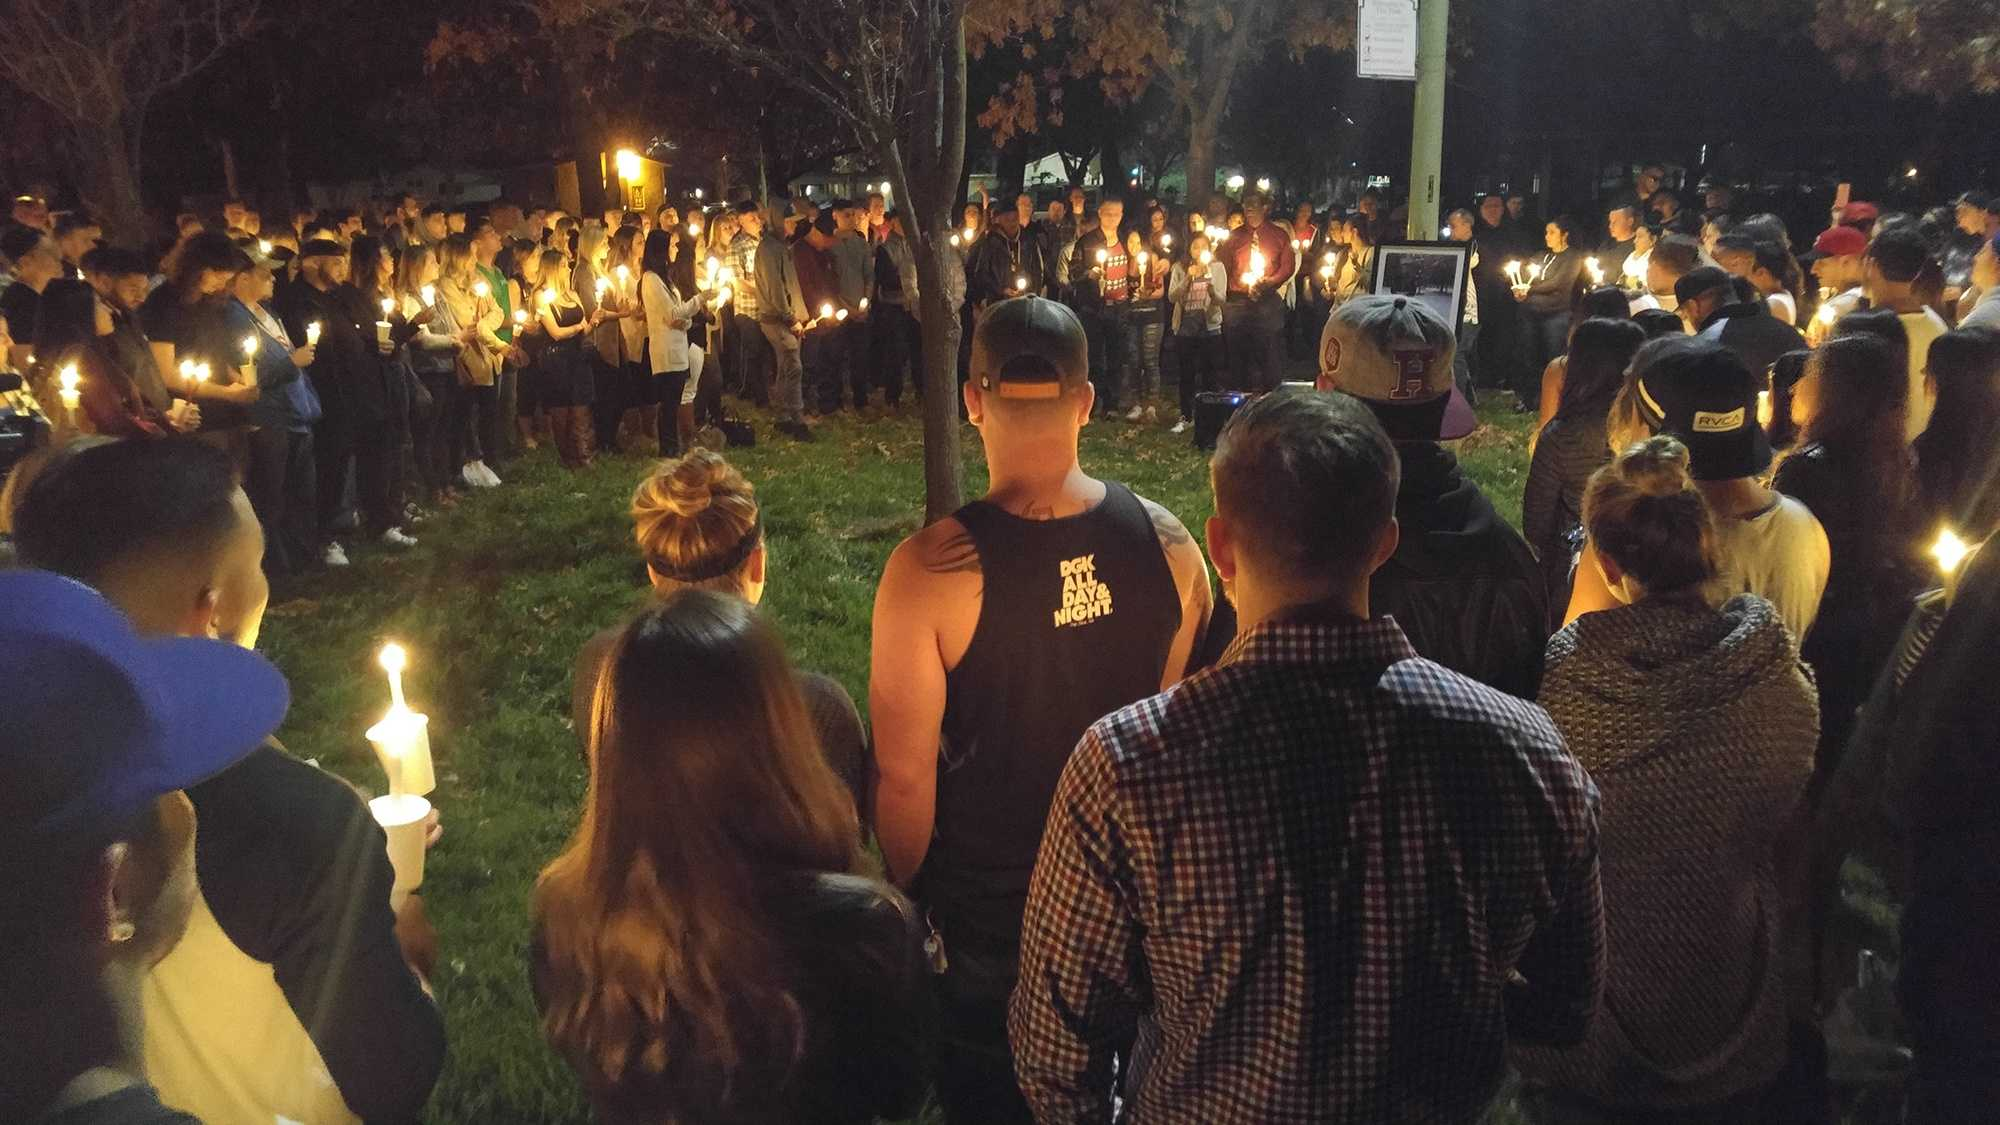 More than a hundred family members and friends gathered at Glenbrook Park in Sacramento on Friday, Feb. 12, 2016, for a vigil to remember Brett Jones. Jones was killed in a drunk driving crash the day before.